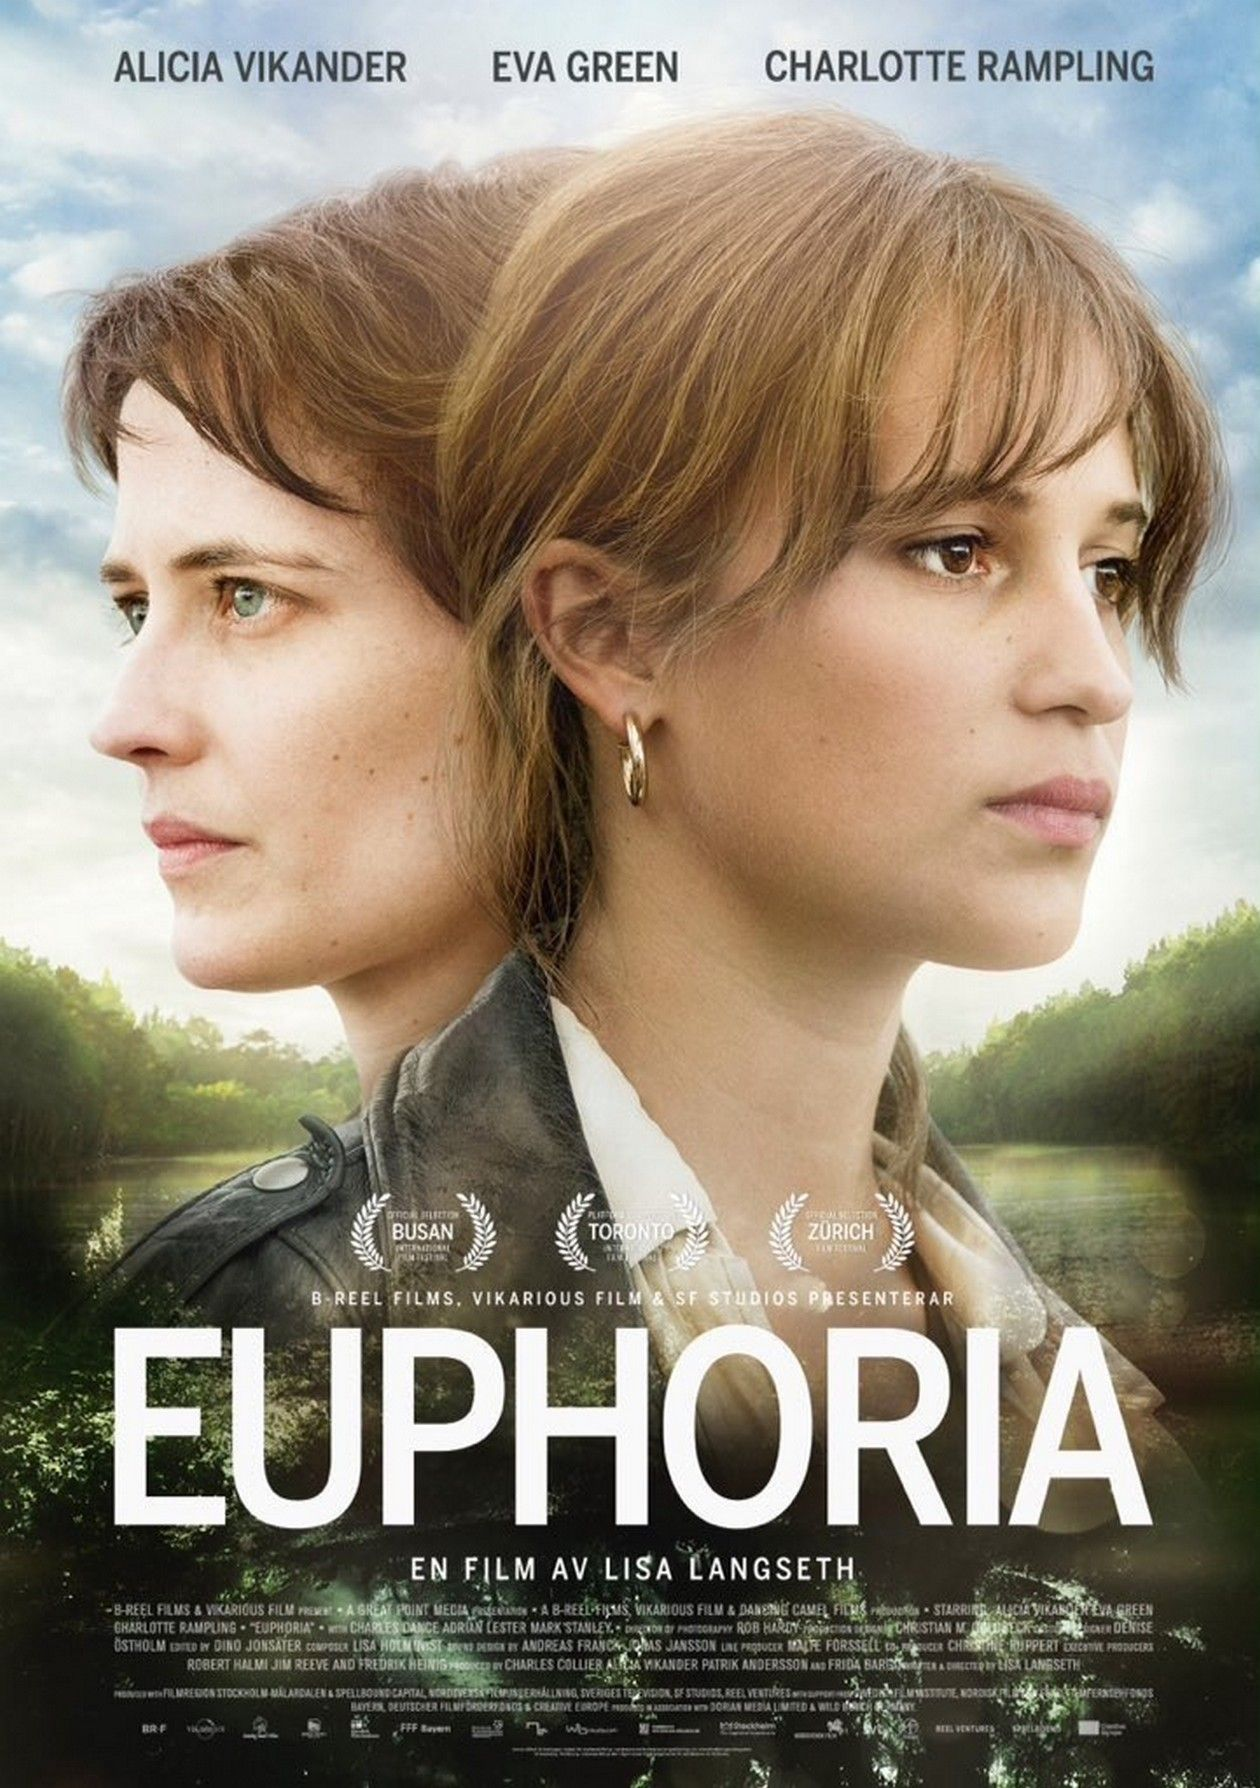 Eva Green / Alicia Vikander actresses | Euphoria / Lisa Langseth 2018 Movie Poster Affiche film